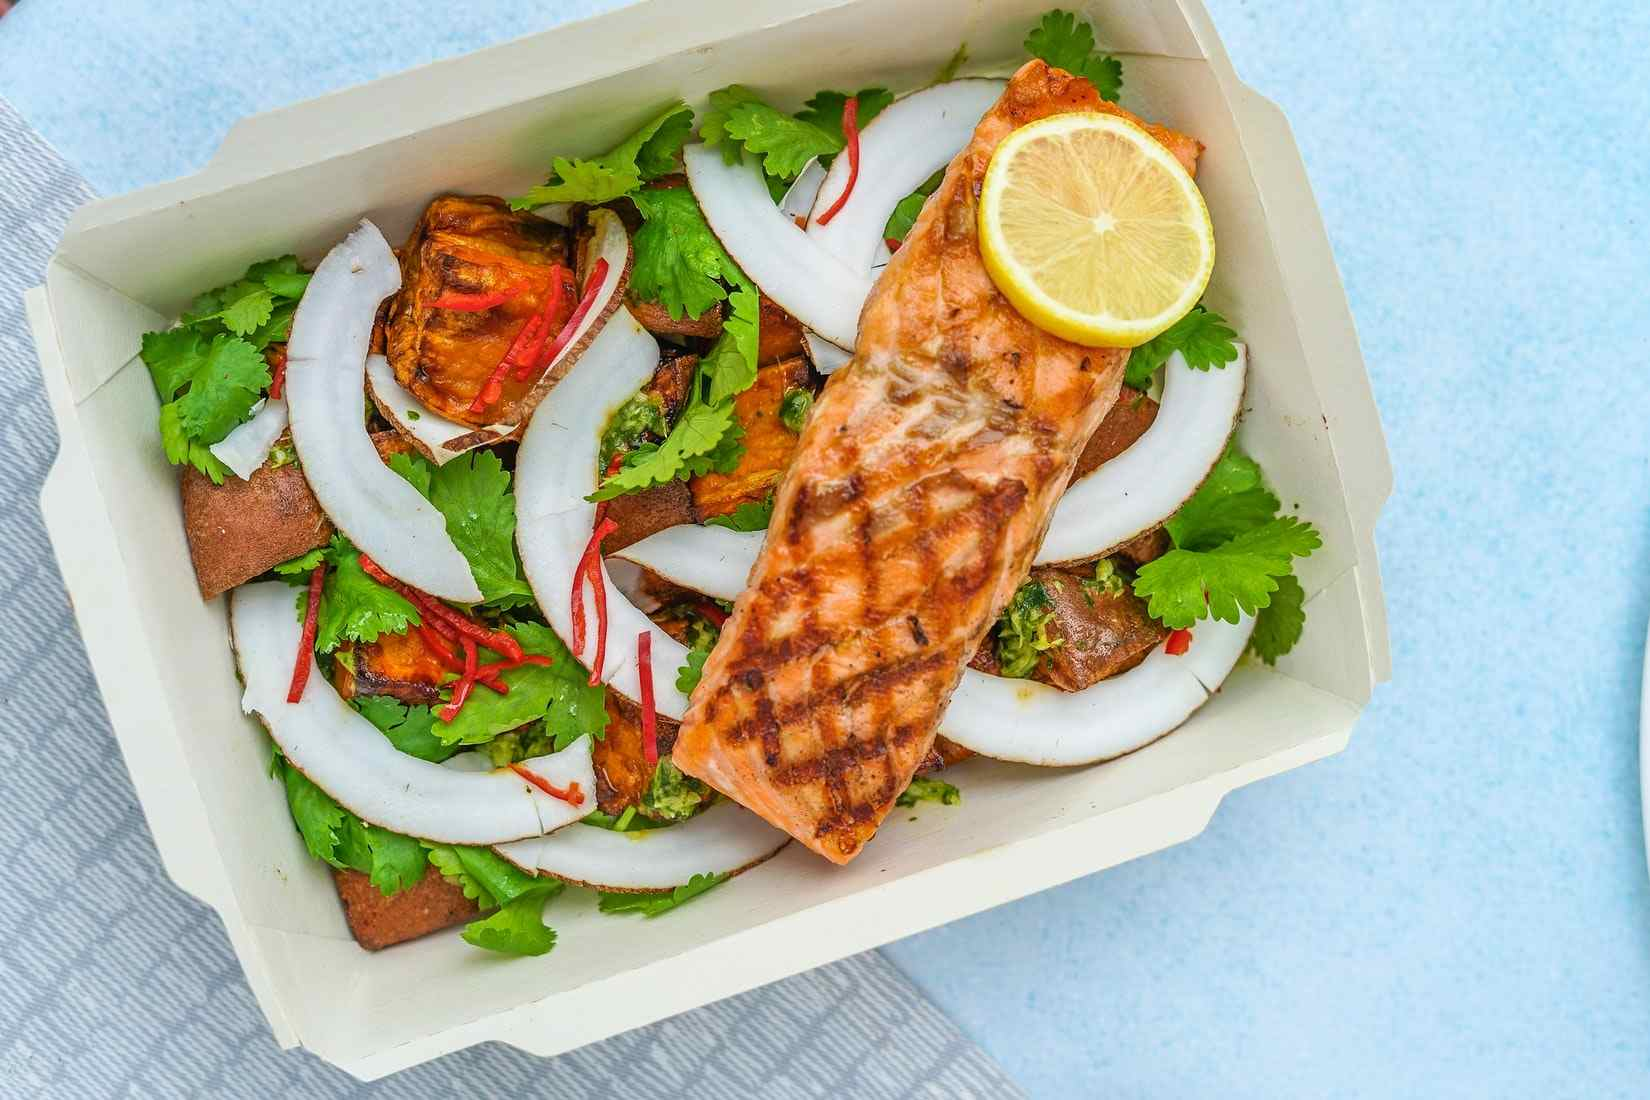 Healthy Salad With Salmon | Goodwill Car Donations